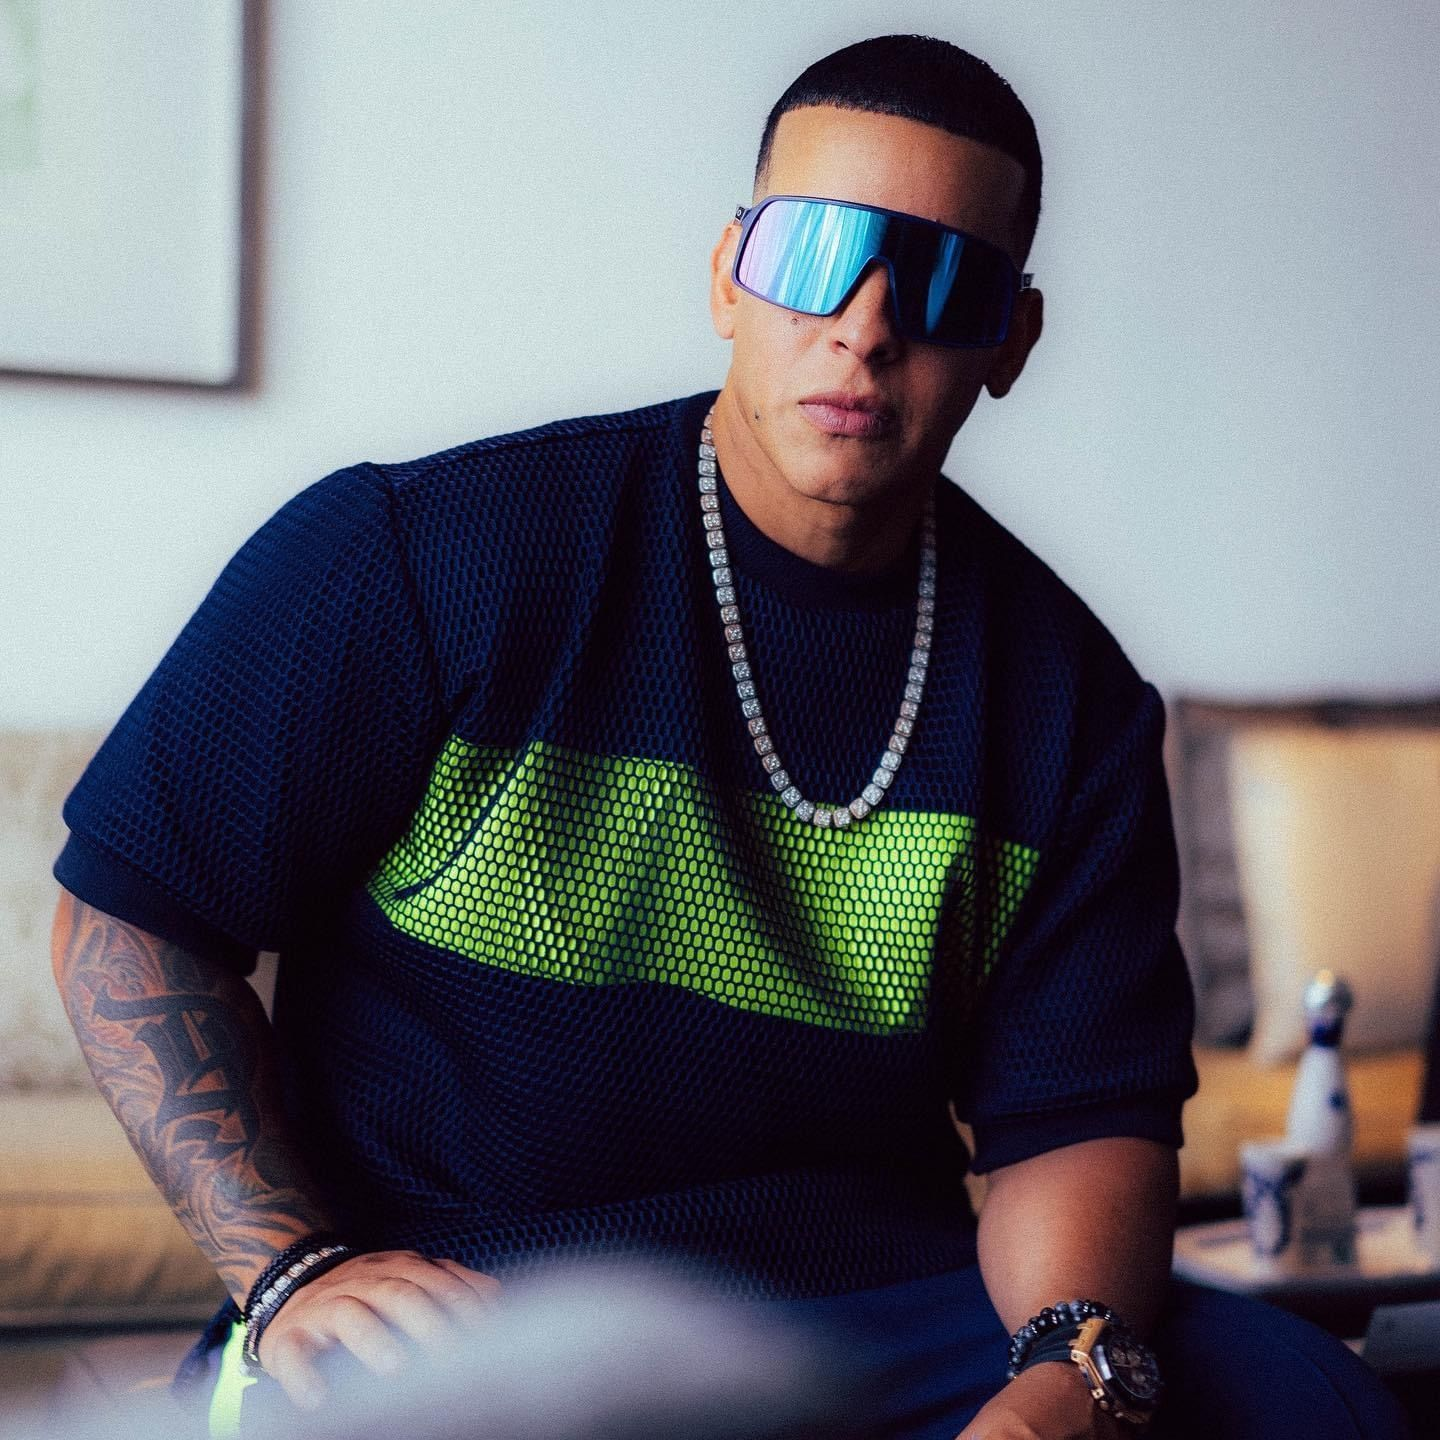 Pin By Irm On Daddy Yankee In 2020 Daddy Yankee Gorgeous Men Daddy